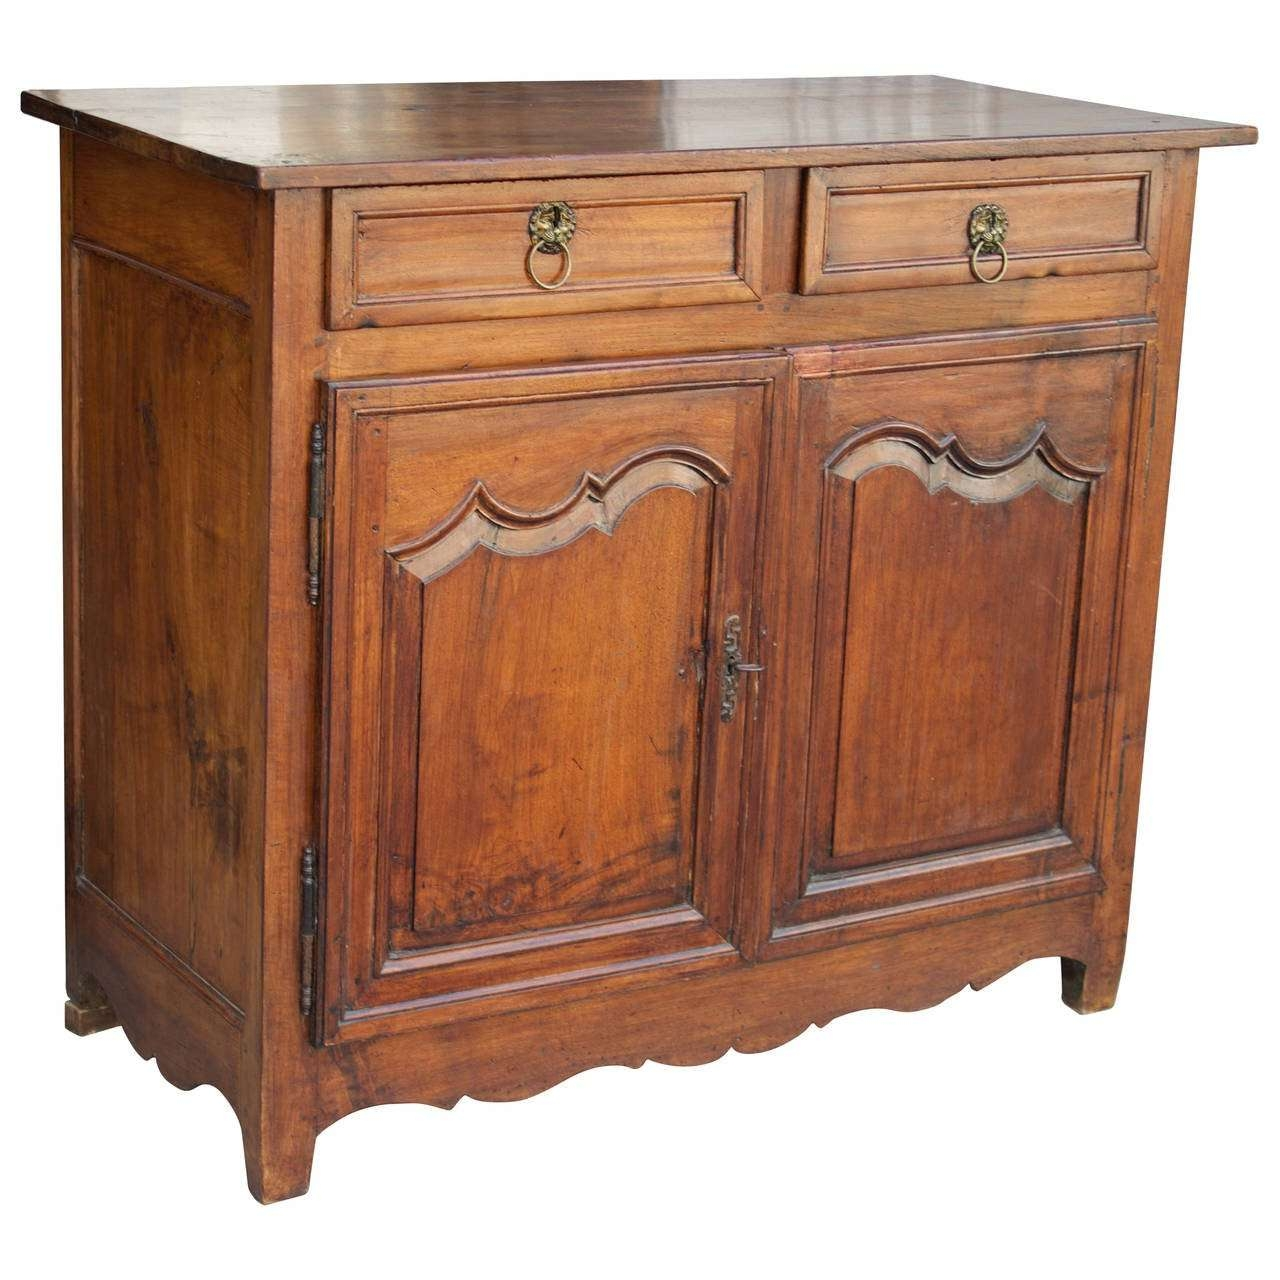 18Th Century French Country Louis Xiv Walnut Buffet Or Sideboard Pertaining To French Country Sideboards (View 1 of 20)